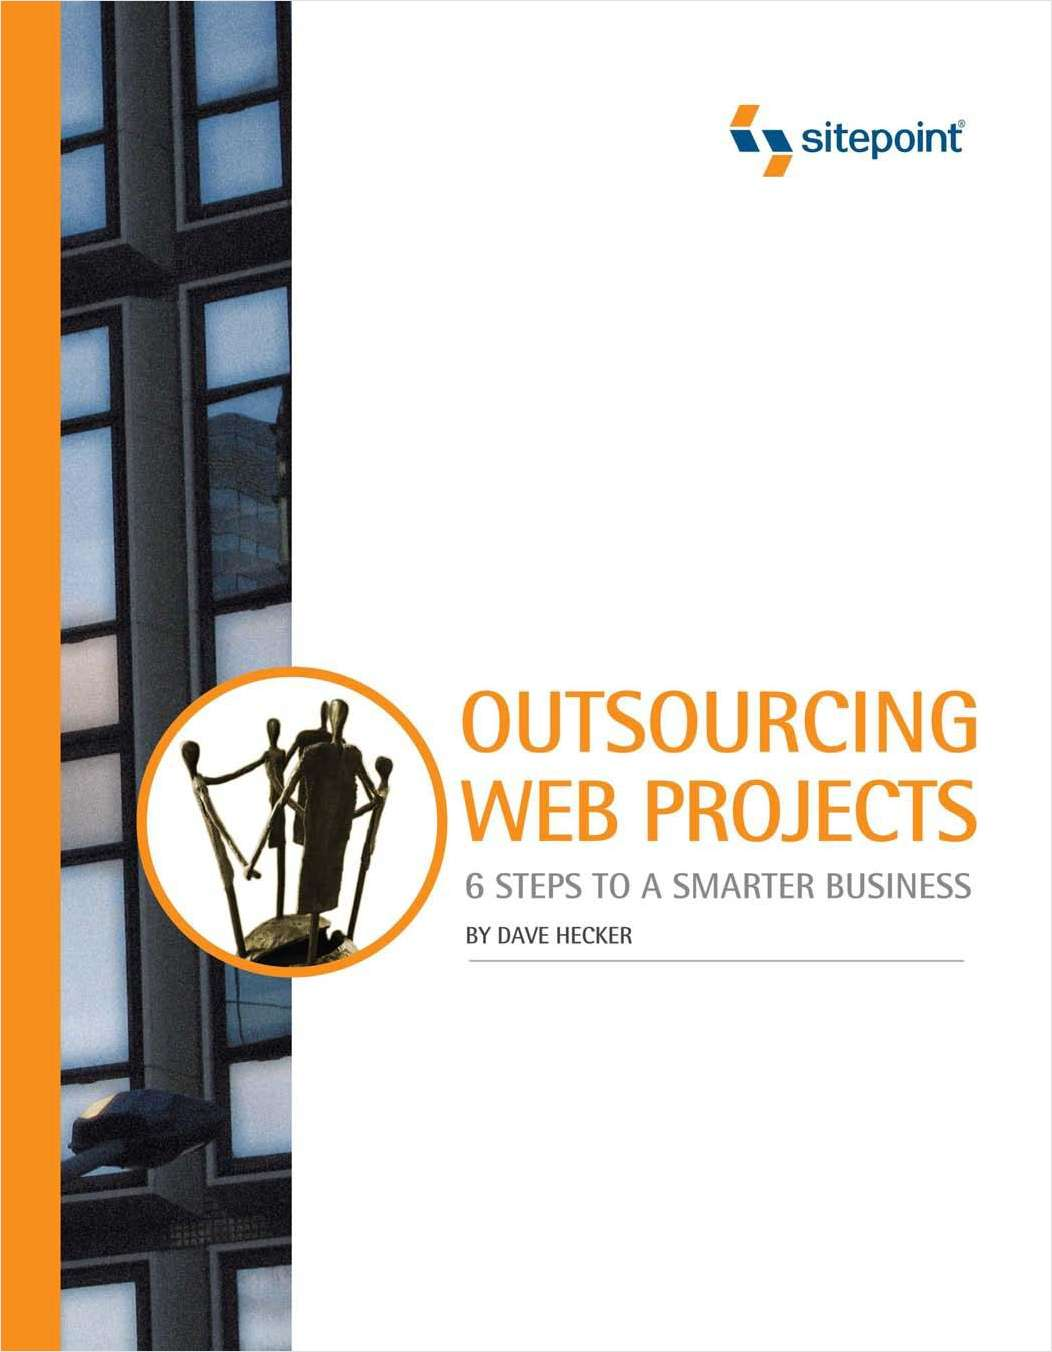 Outsourcing Web Projects: 6 Steps to a Smarter Business - Free Preview!